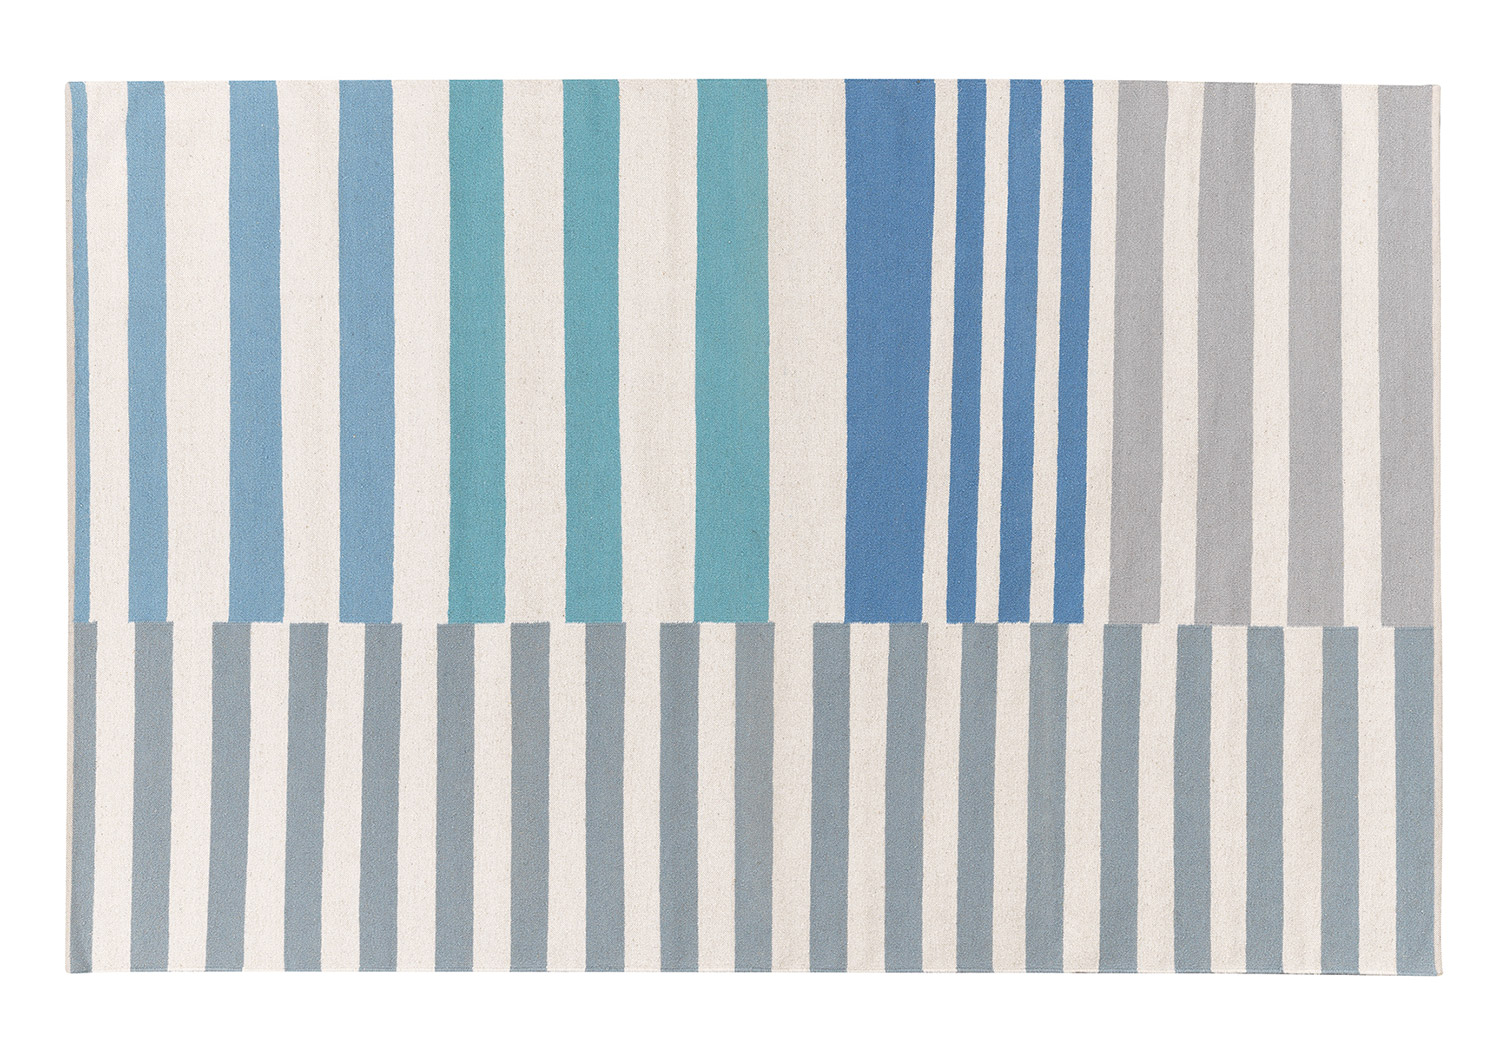 Tappeto a righe Designers Guild - Stylish Striped Rug Anwen Delft